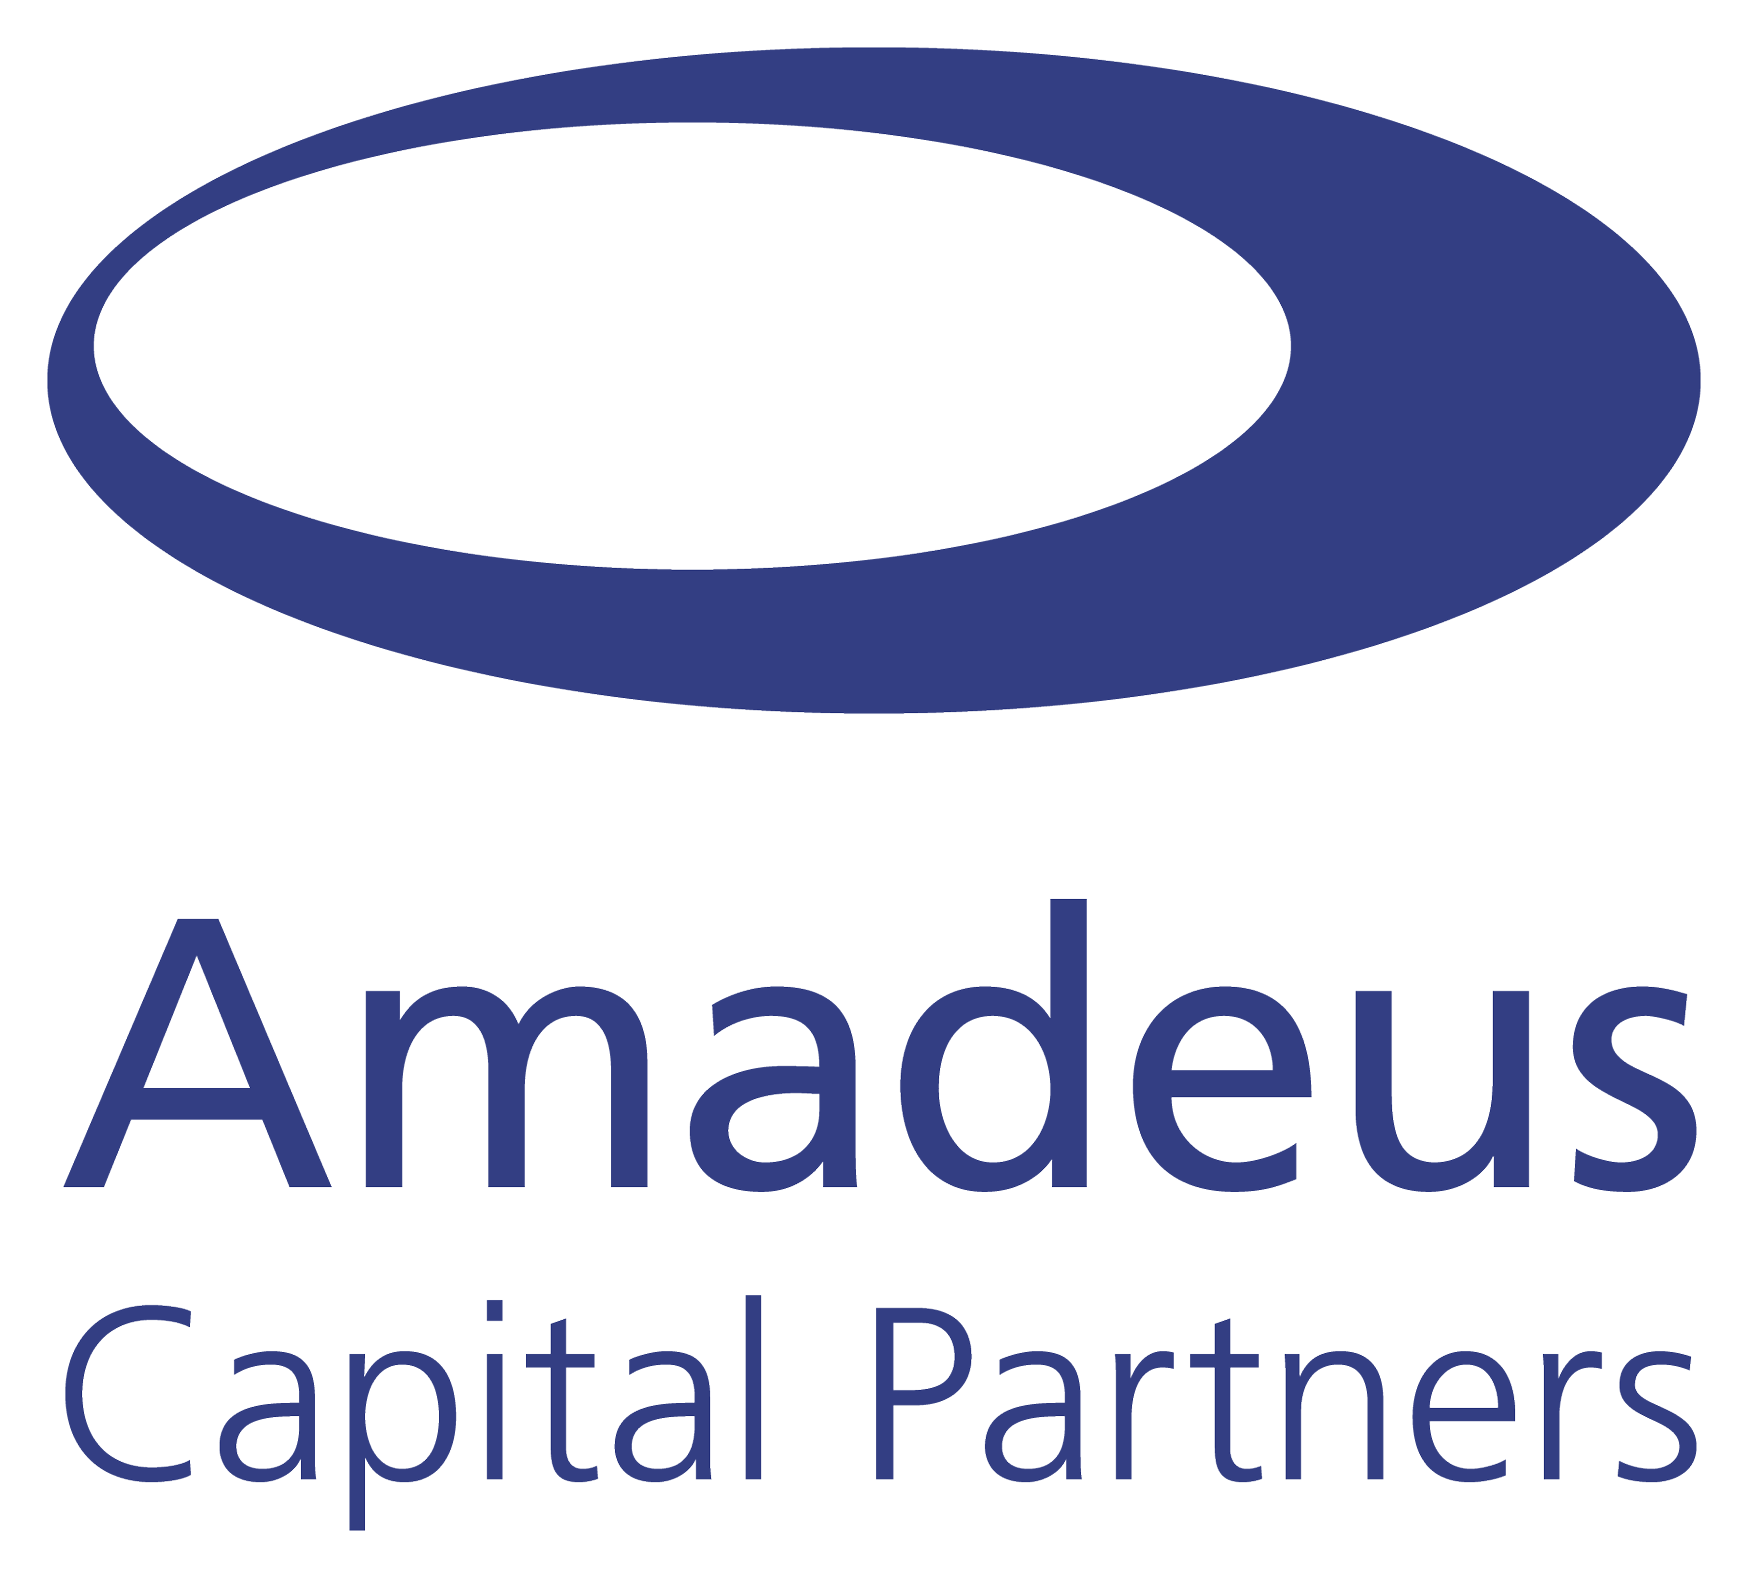 Amadeus-CP No LTD PRT Logo BLUE.png